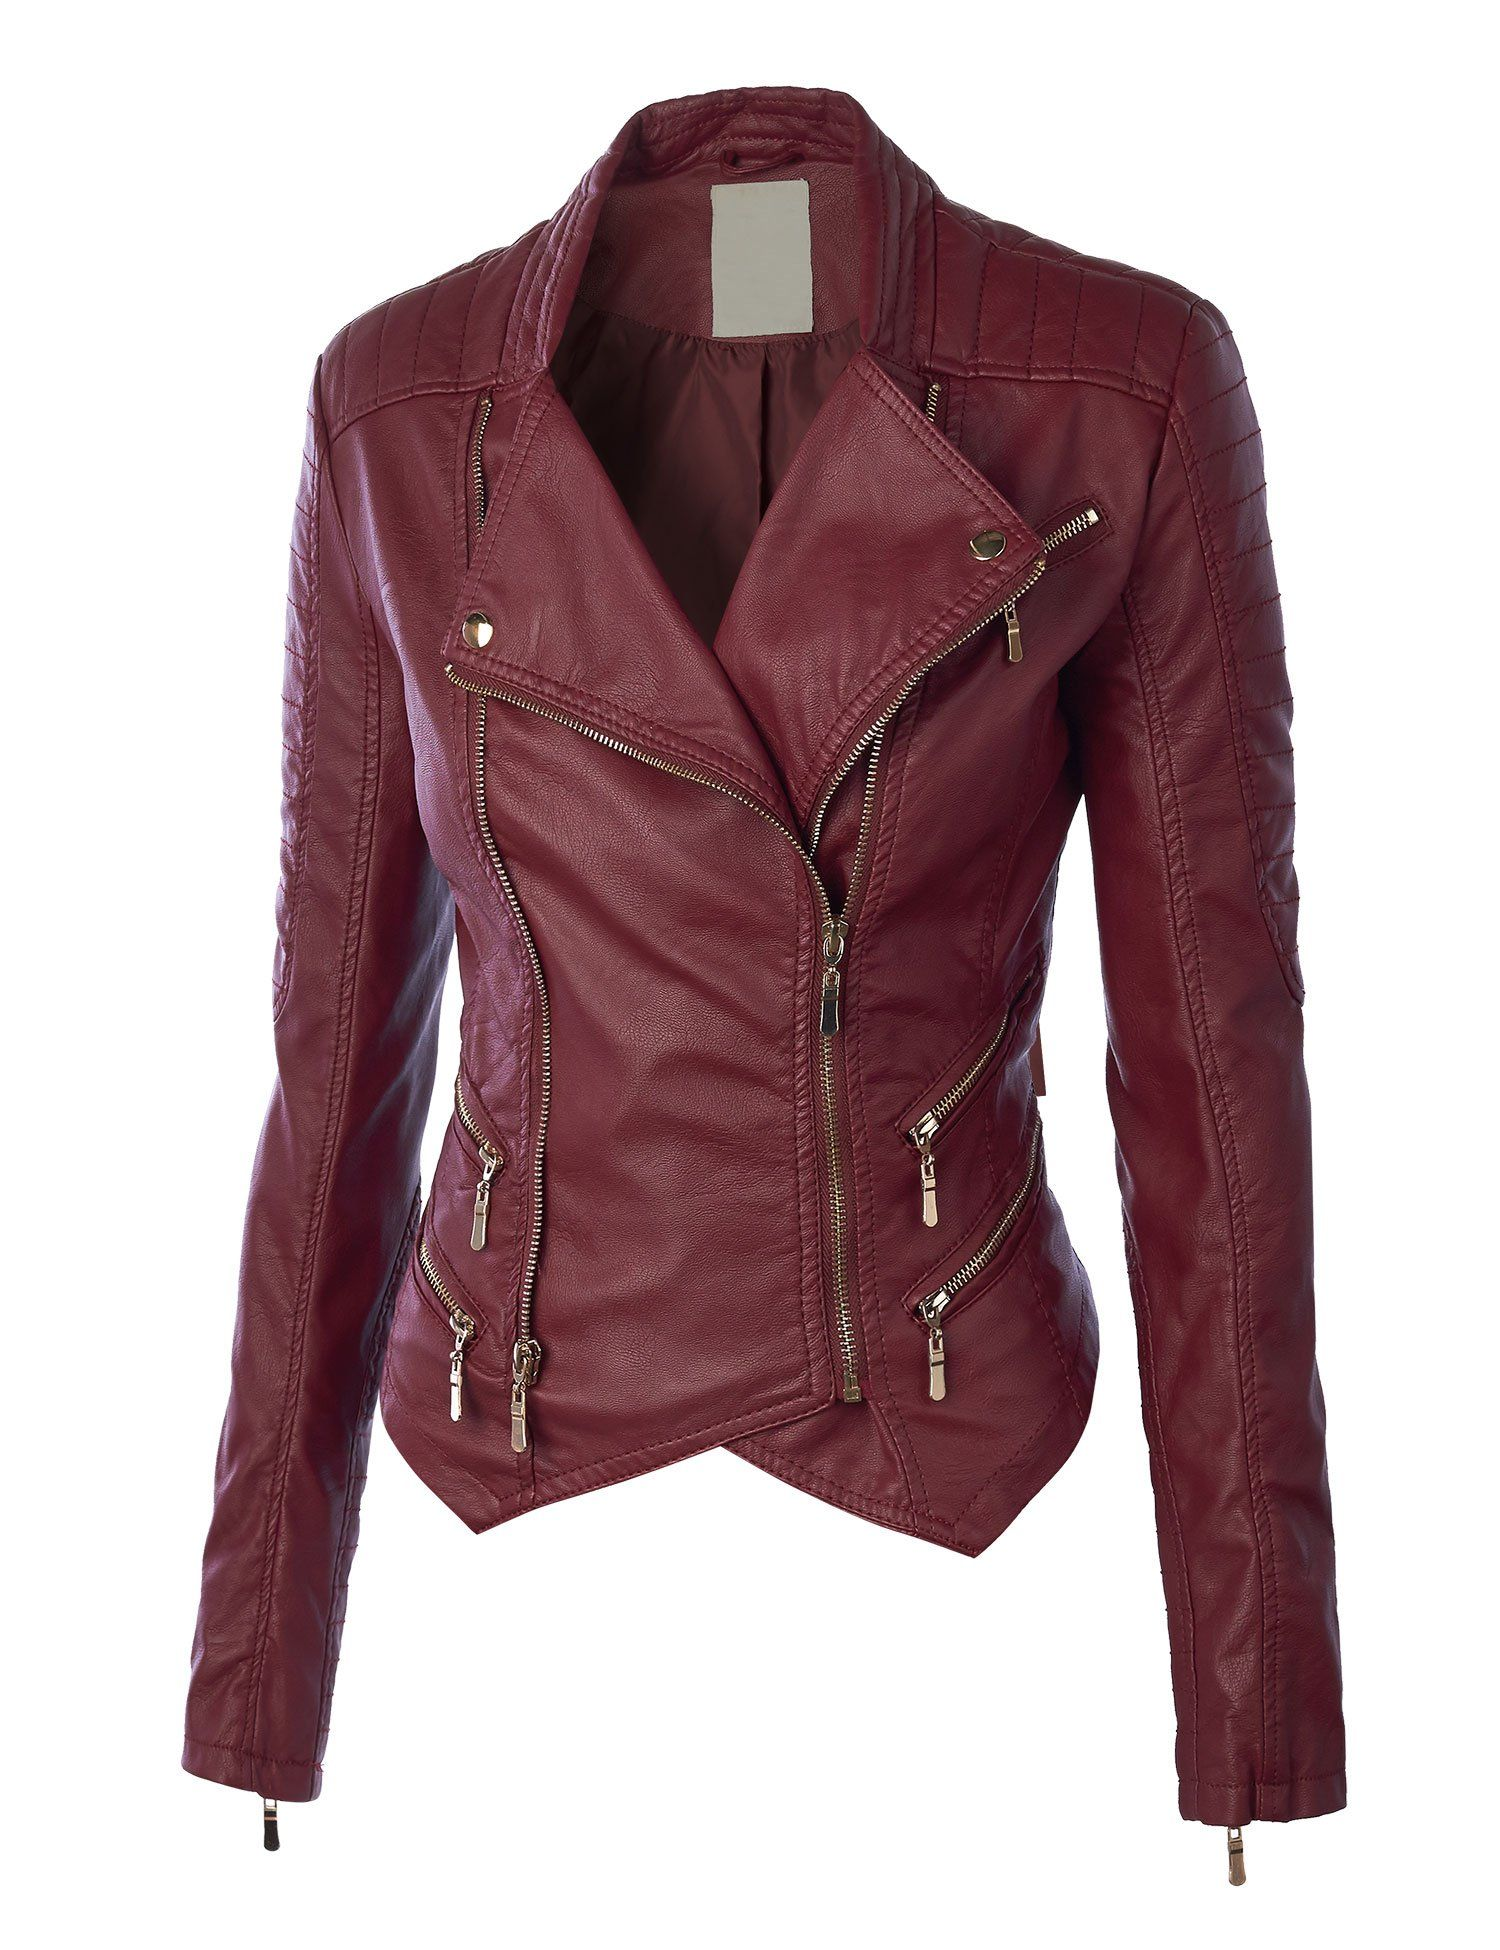 39.99 LL Womens Faux Leather Zip Up Biker Jacket with